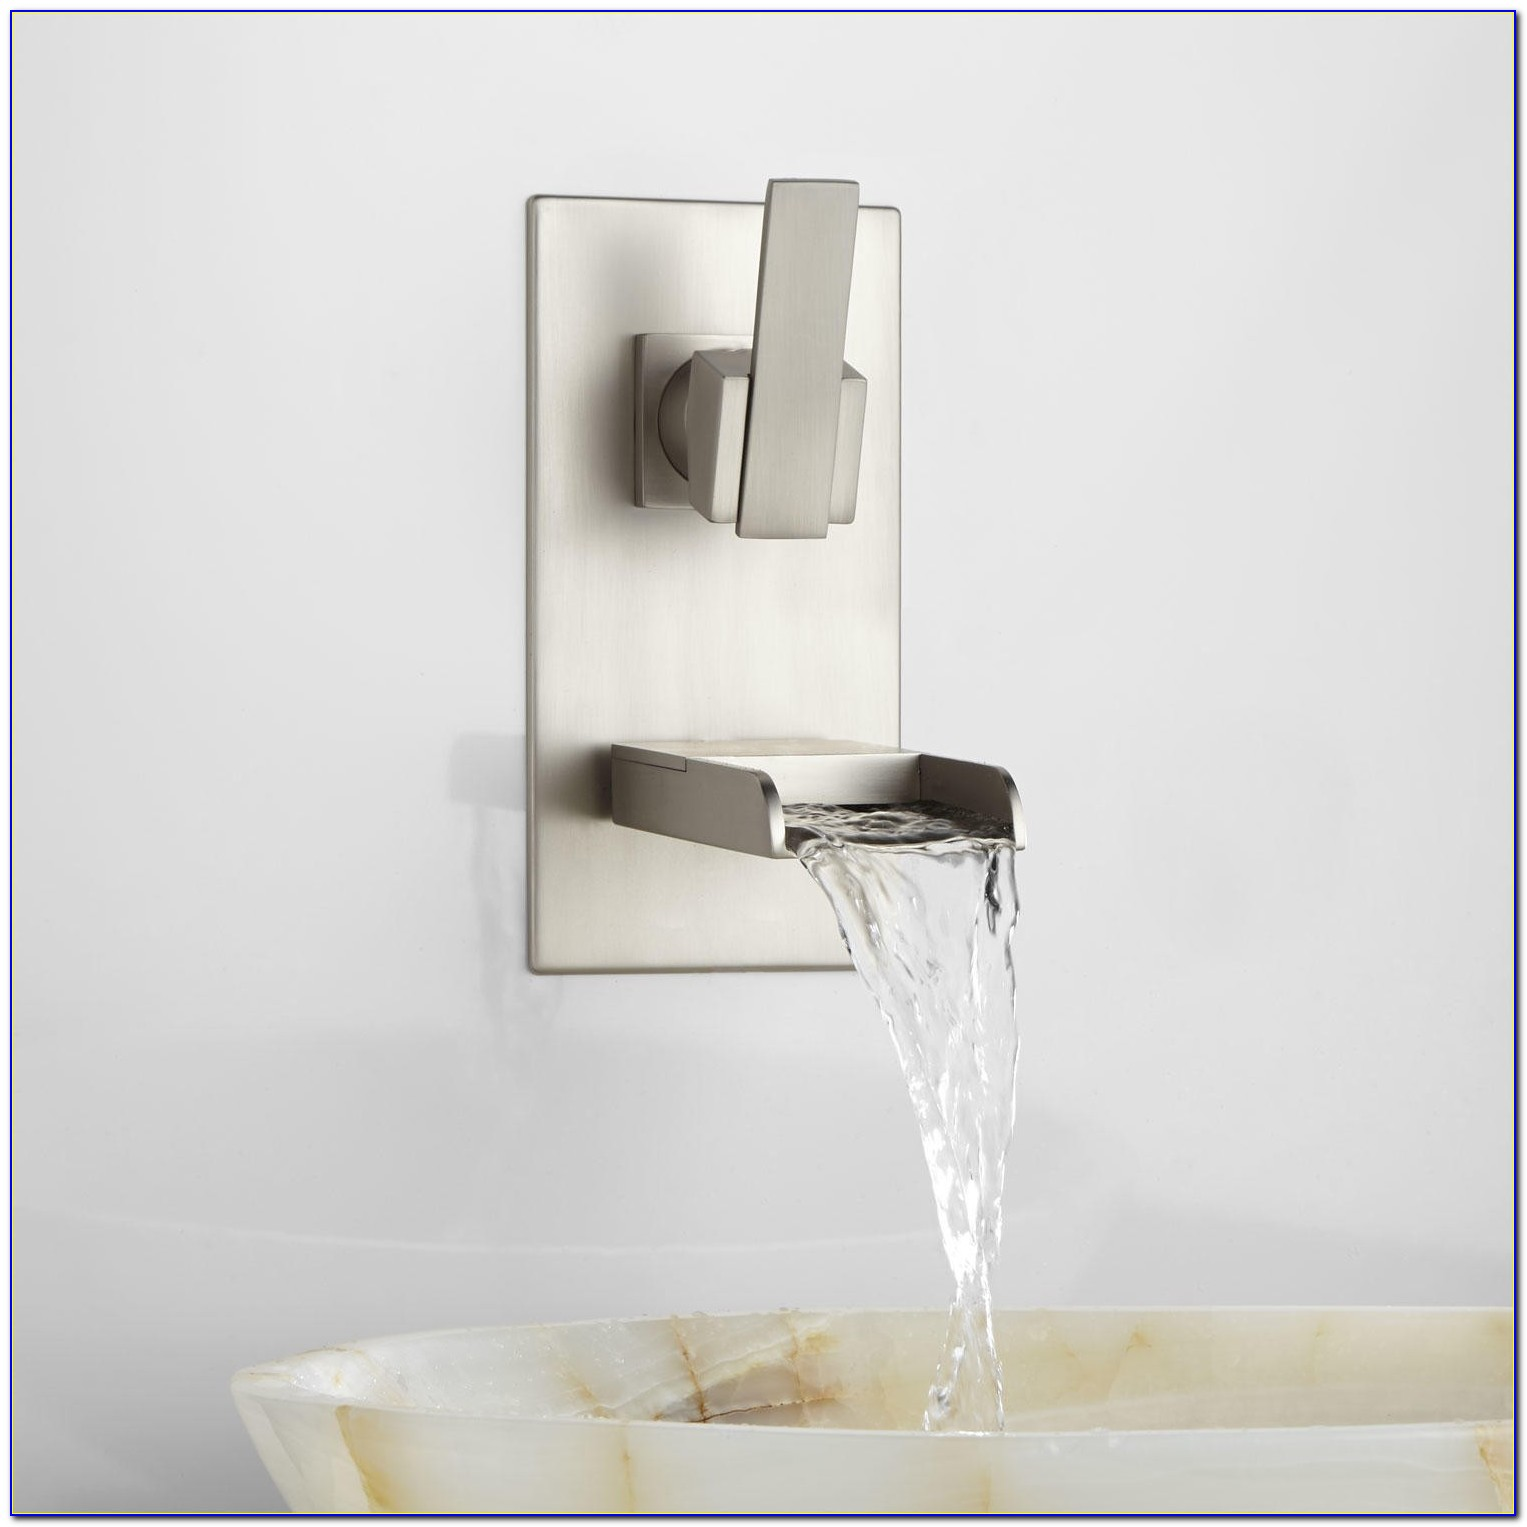 Wall Mounted Sink Faucet Bathroom